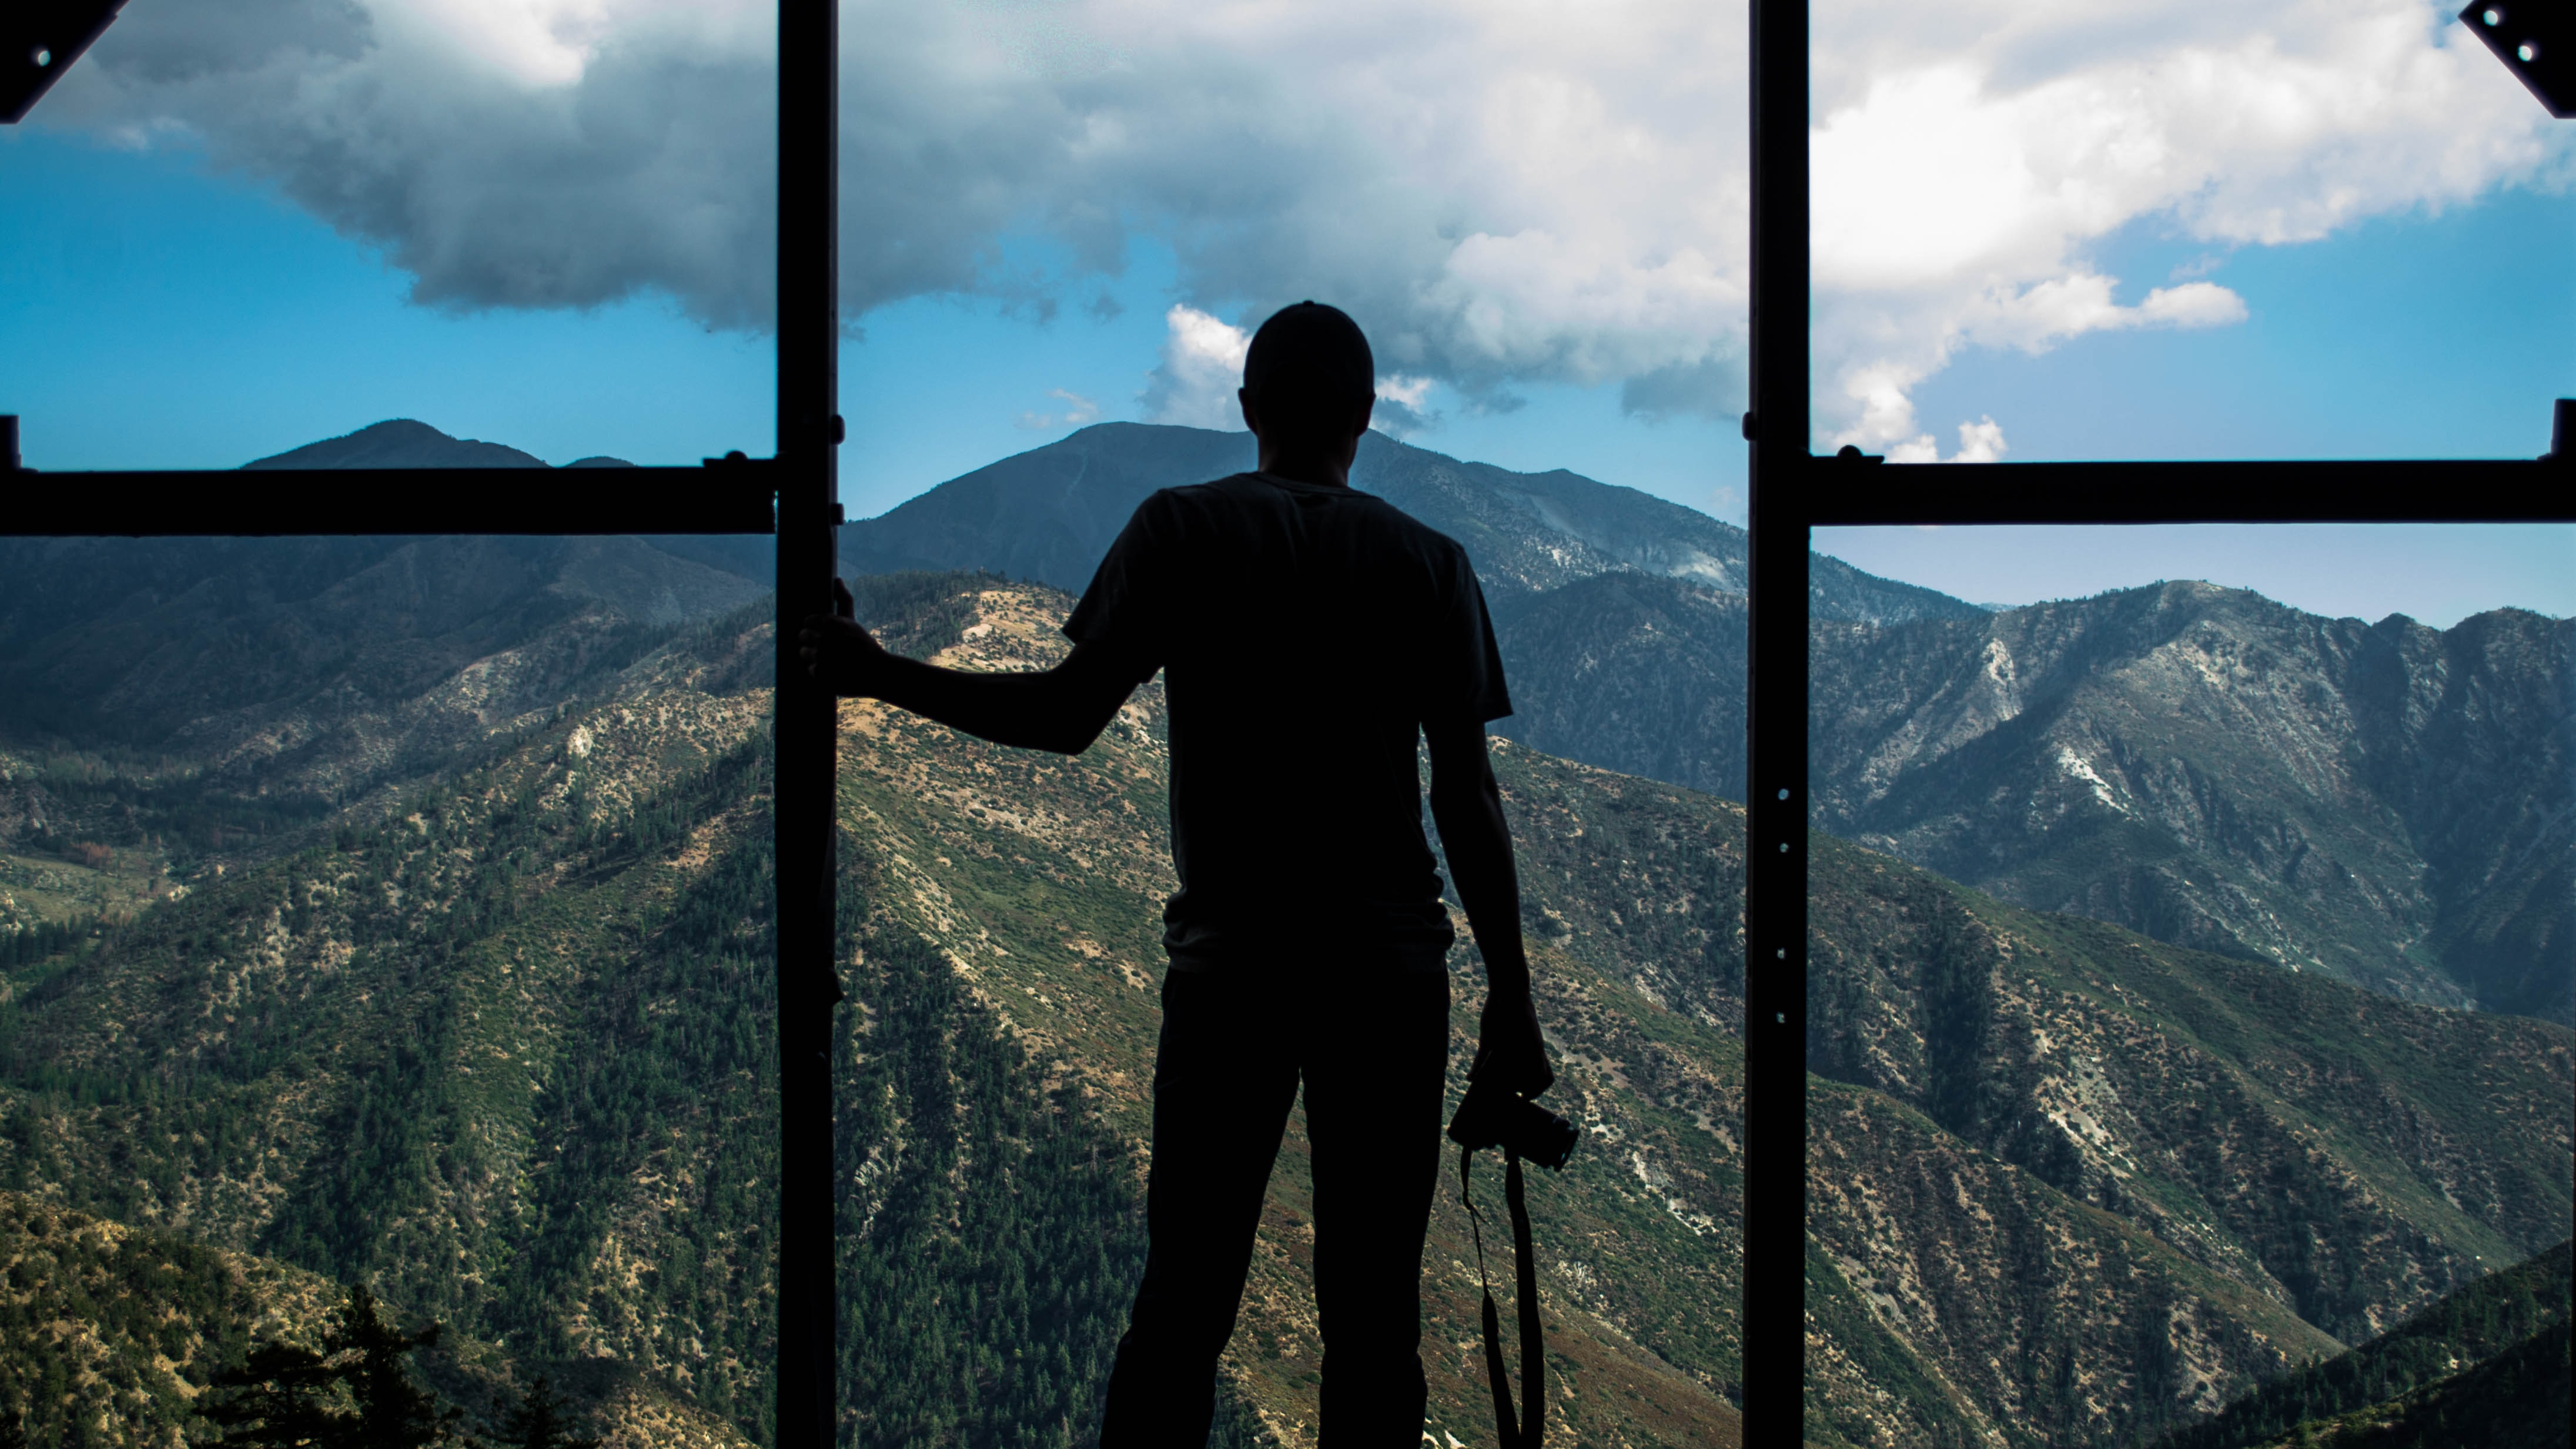 silhouette photo of person standing near door overlooking mountain during daytime